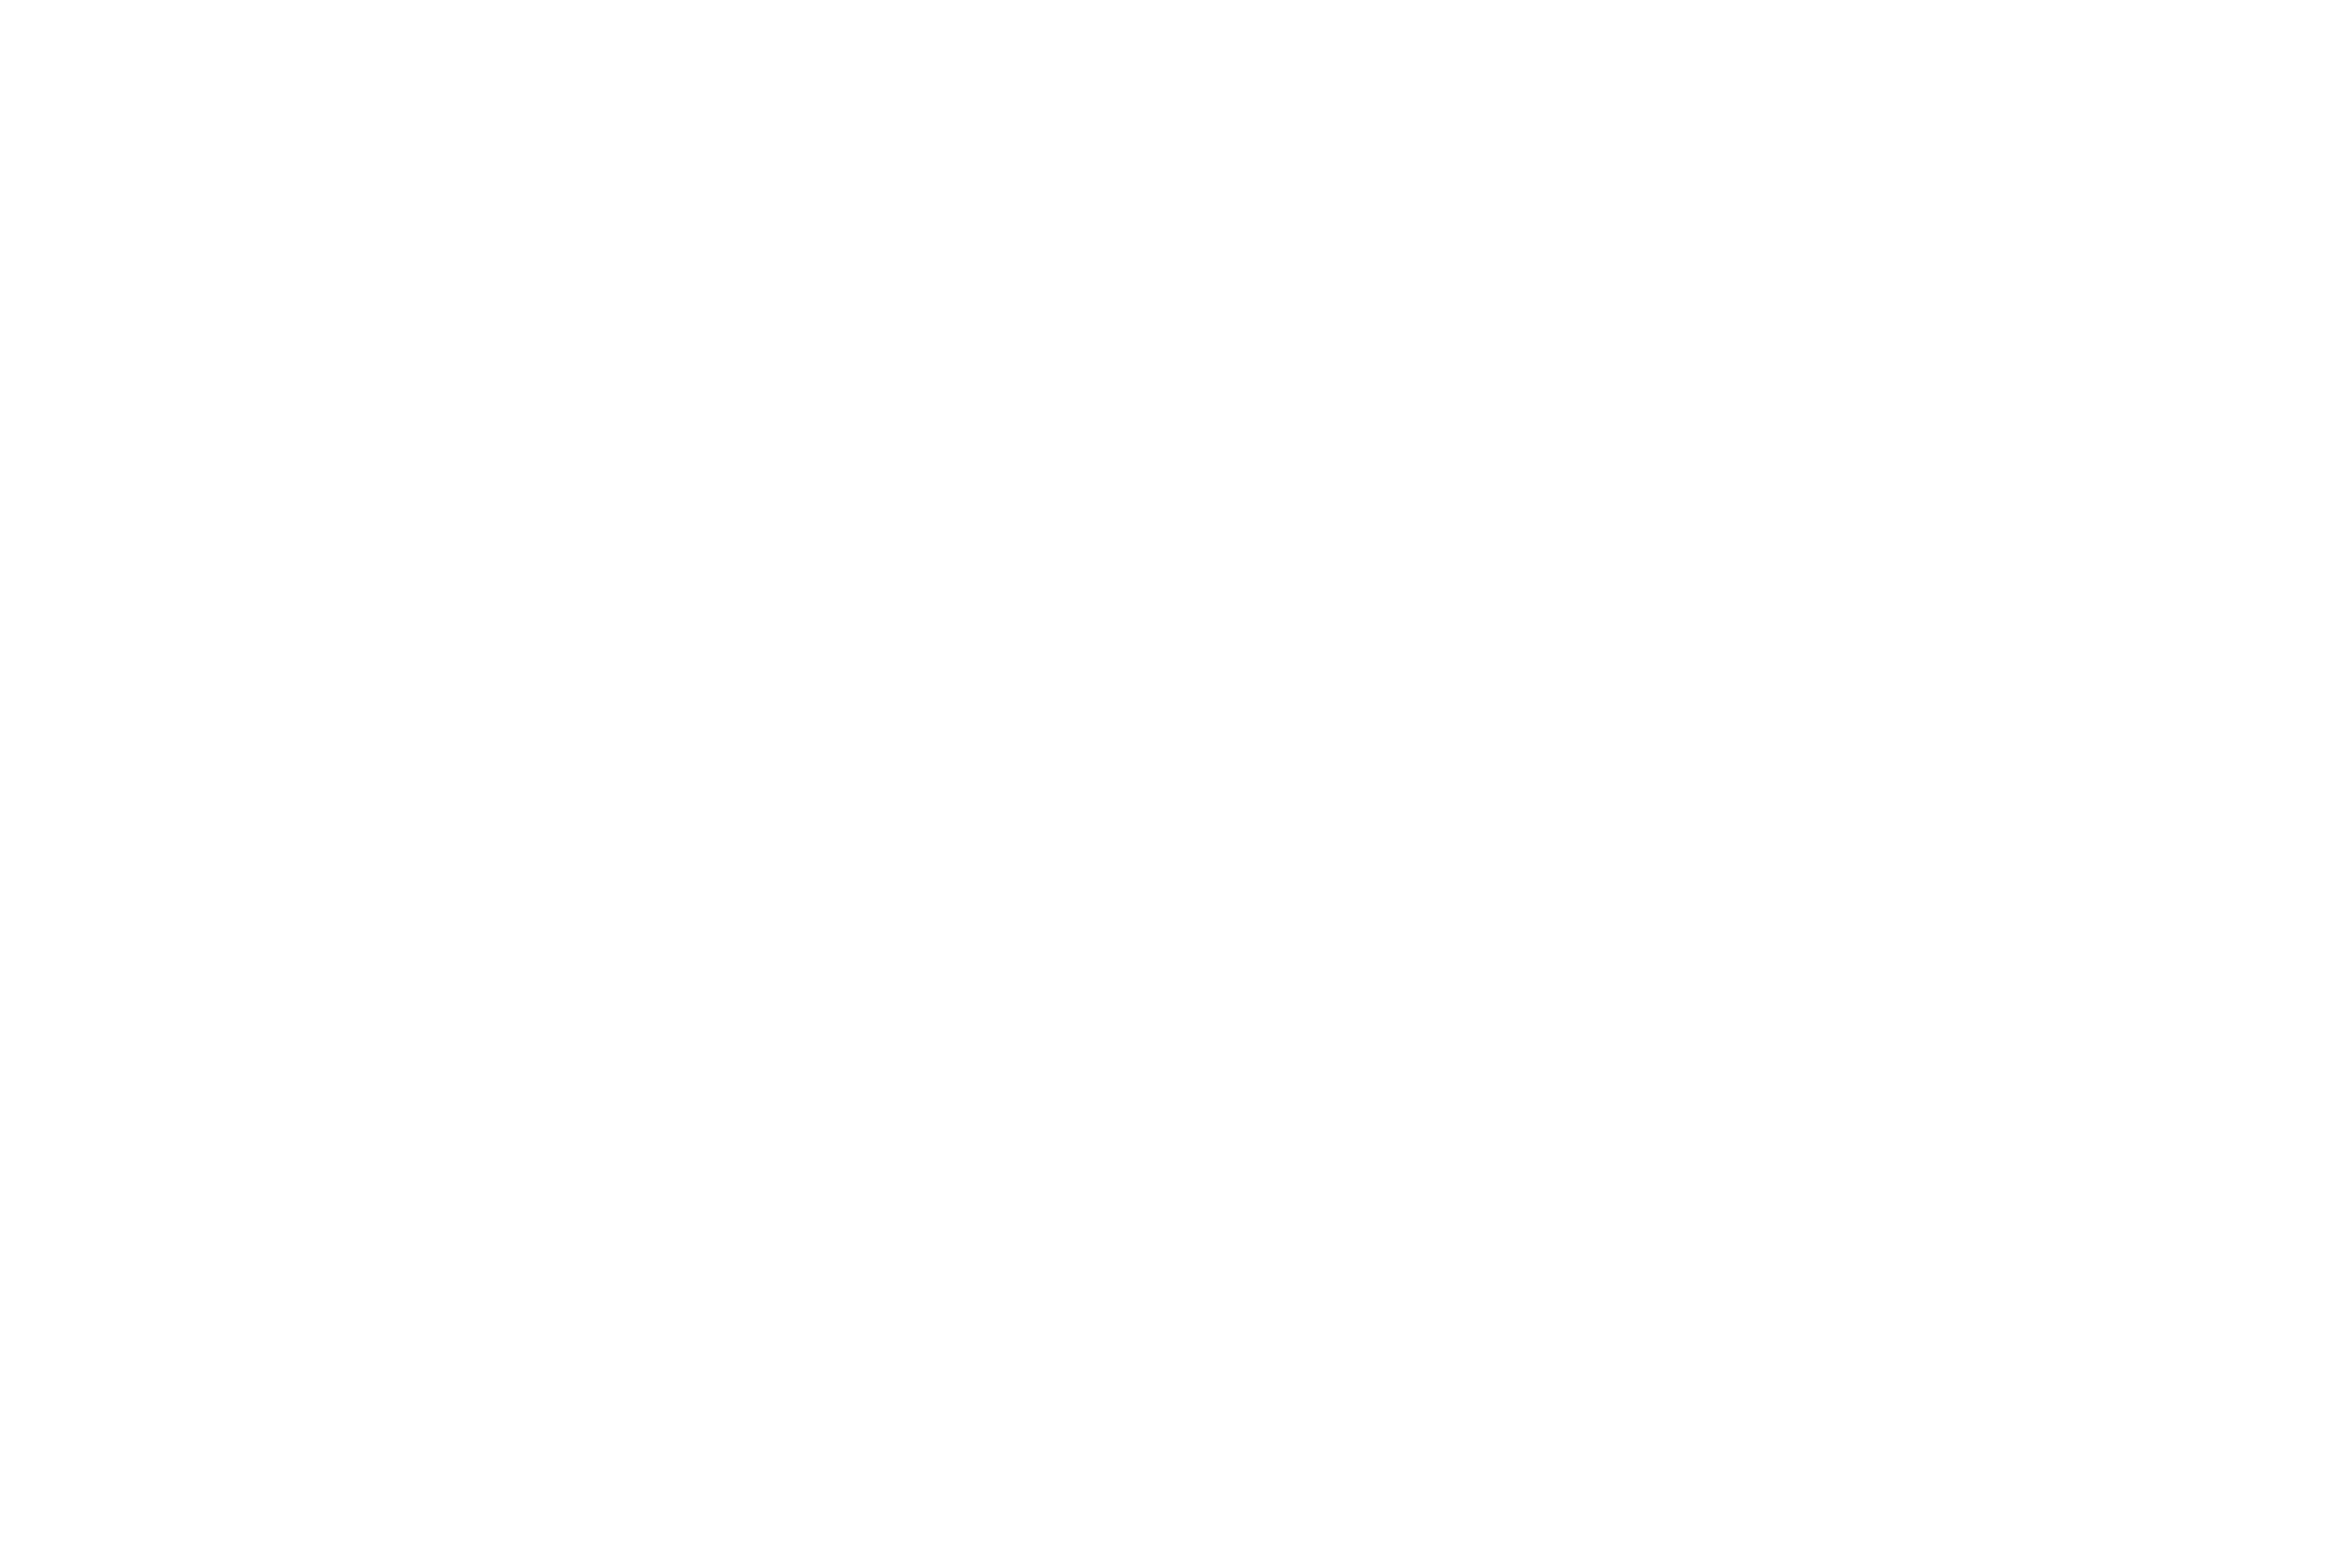 ThreadUP logo in white